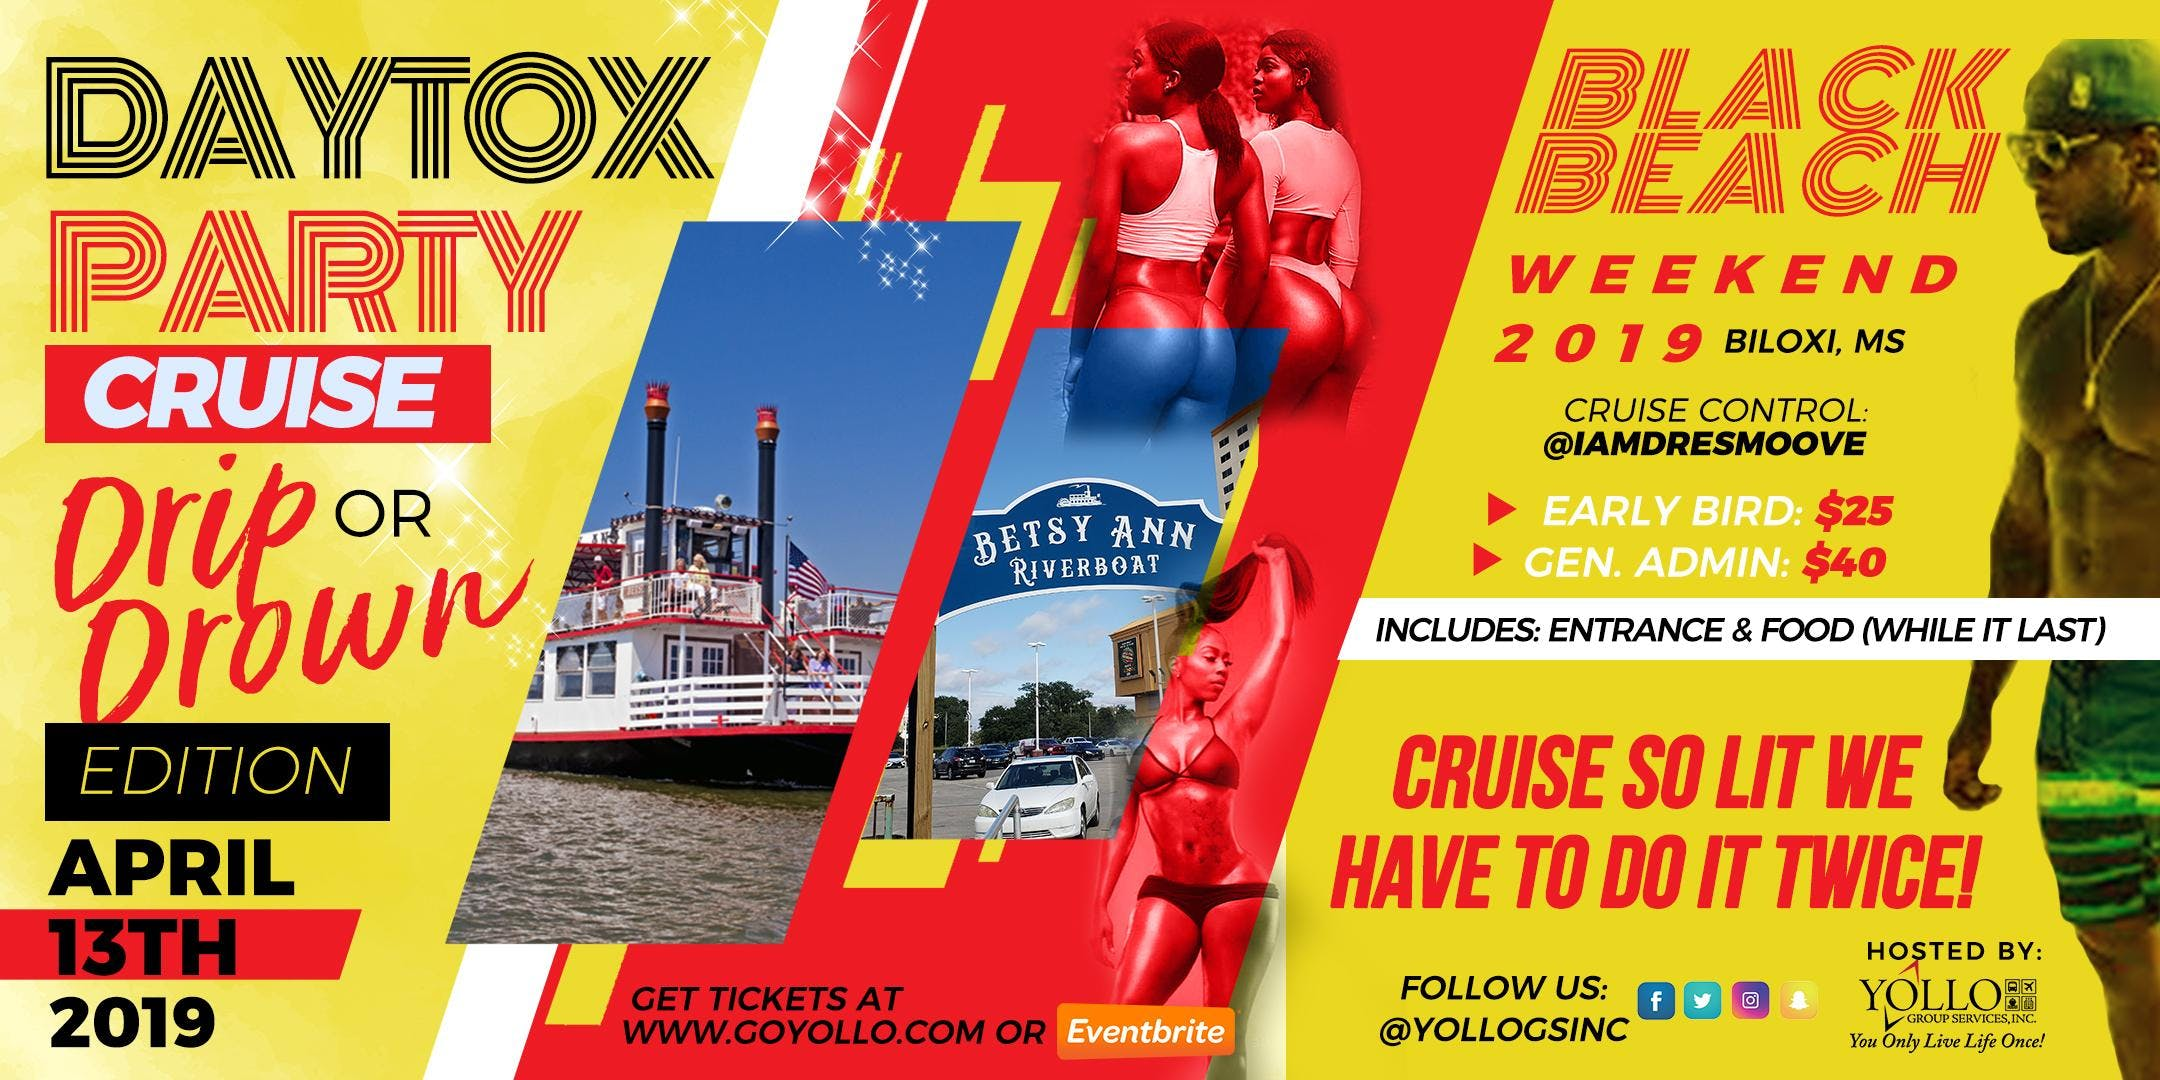 Daytox Party Cruise Black Beach Weekend 2019 13 Apr 2019